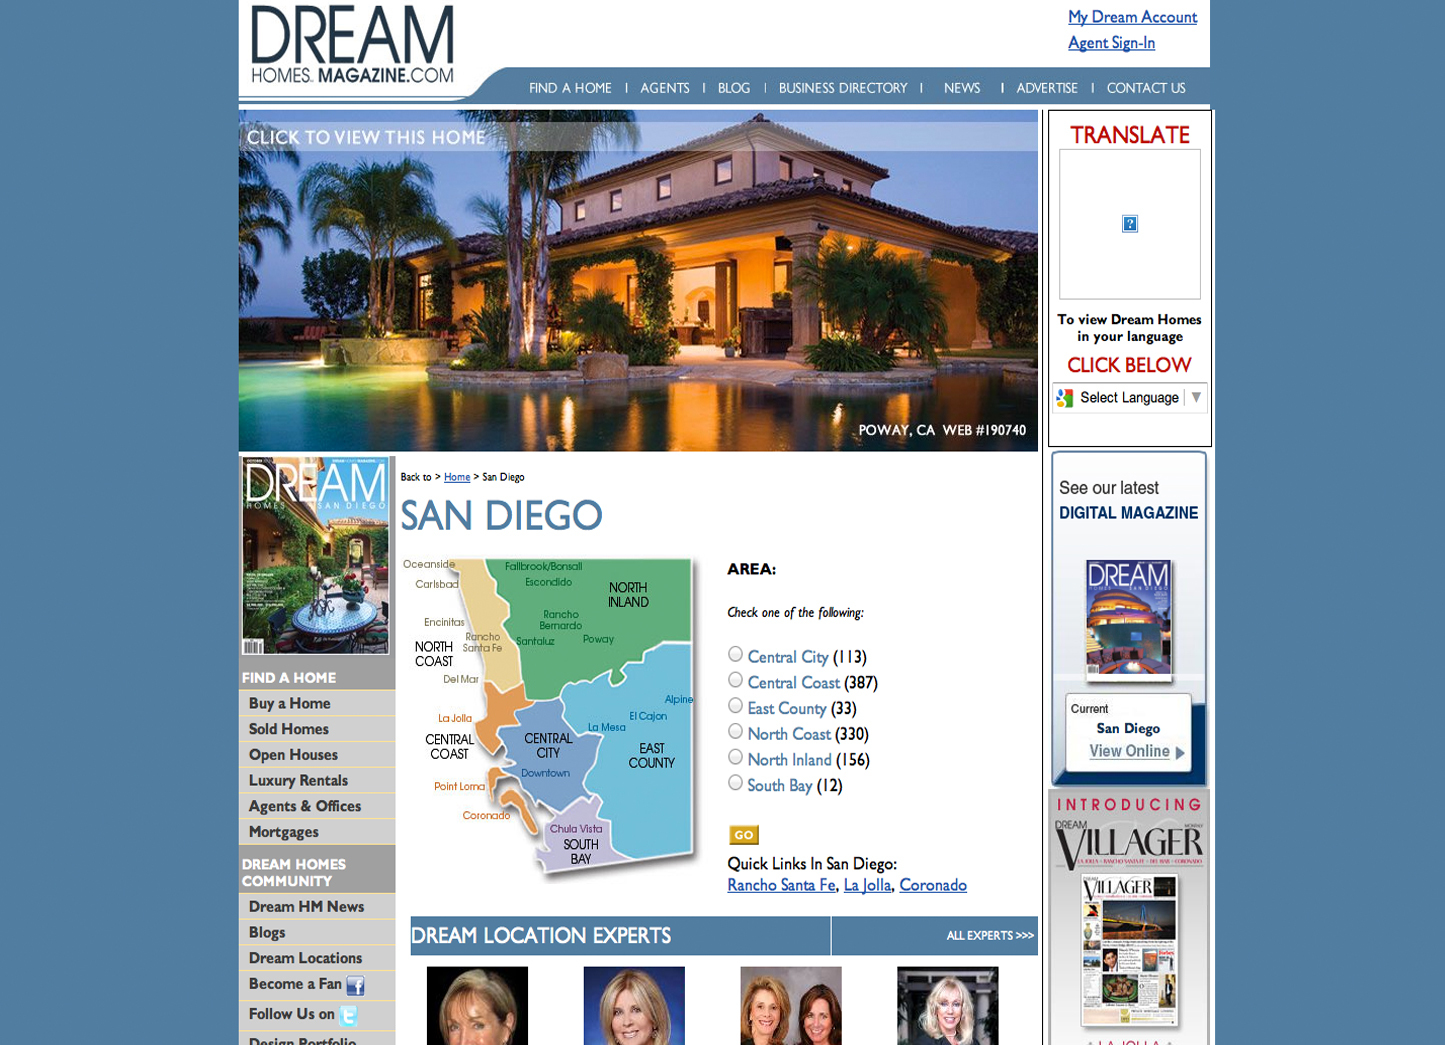 Sr. UI/UX Lead Design Architect  Real Estate Site: Created entire site for Dream Homes Magazine, Managed this entire project, Database Structure design and Layout.  Technology Used: Pen & Paper, Photoshop,Illustrator, Axure RP, Omnigraffle,PHP Cake, MYSQL, JSON,HTML5 & CSS3, Authorize.net API, PAYPAL API.